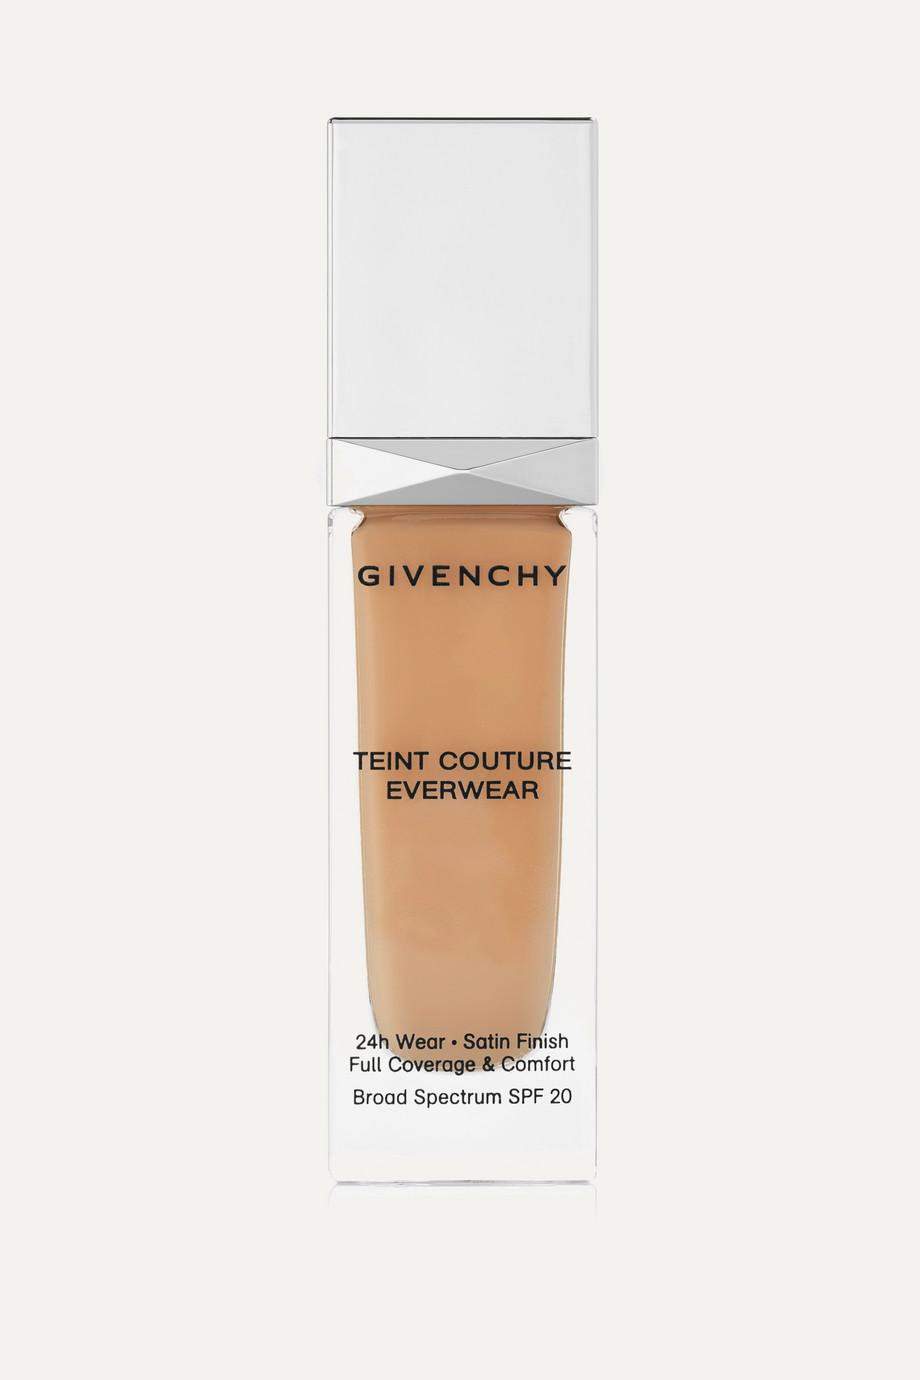 Givenchy Beauty Teint Couture Everwear Foundation SPF20 - Y215, 30ml